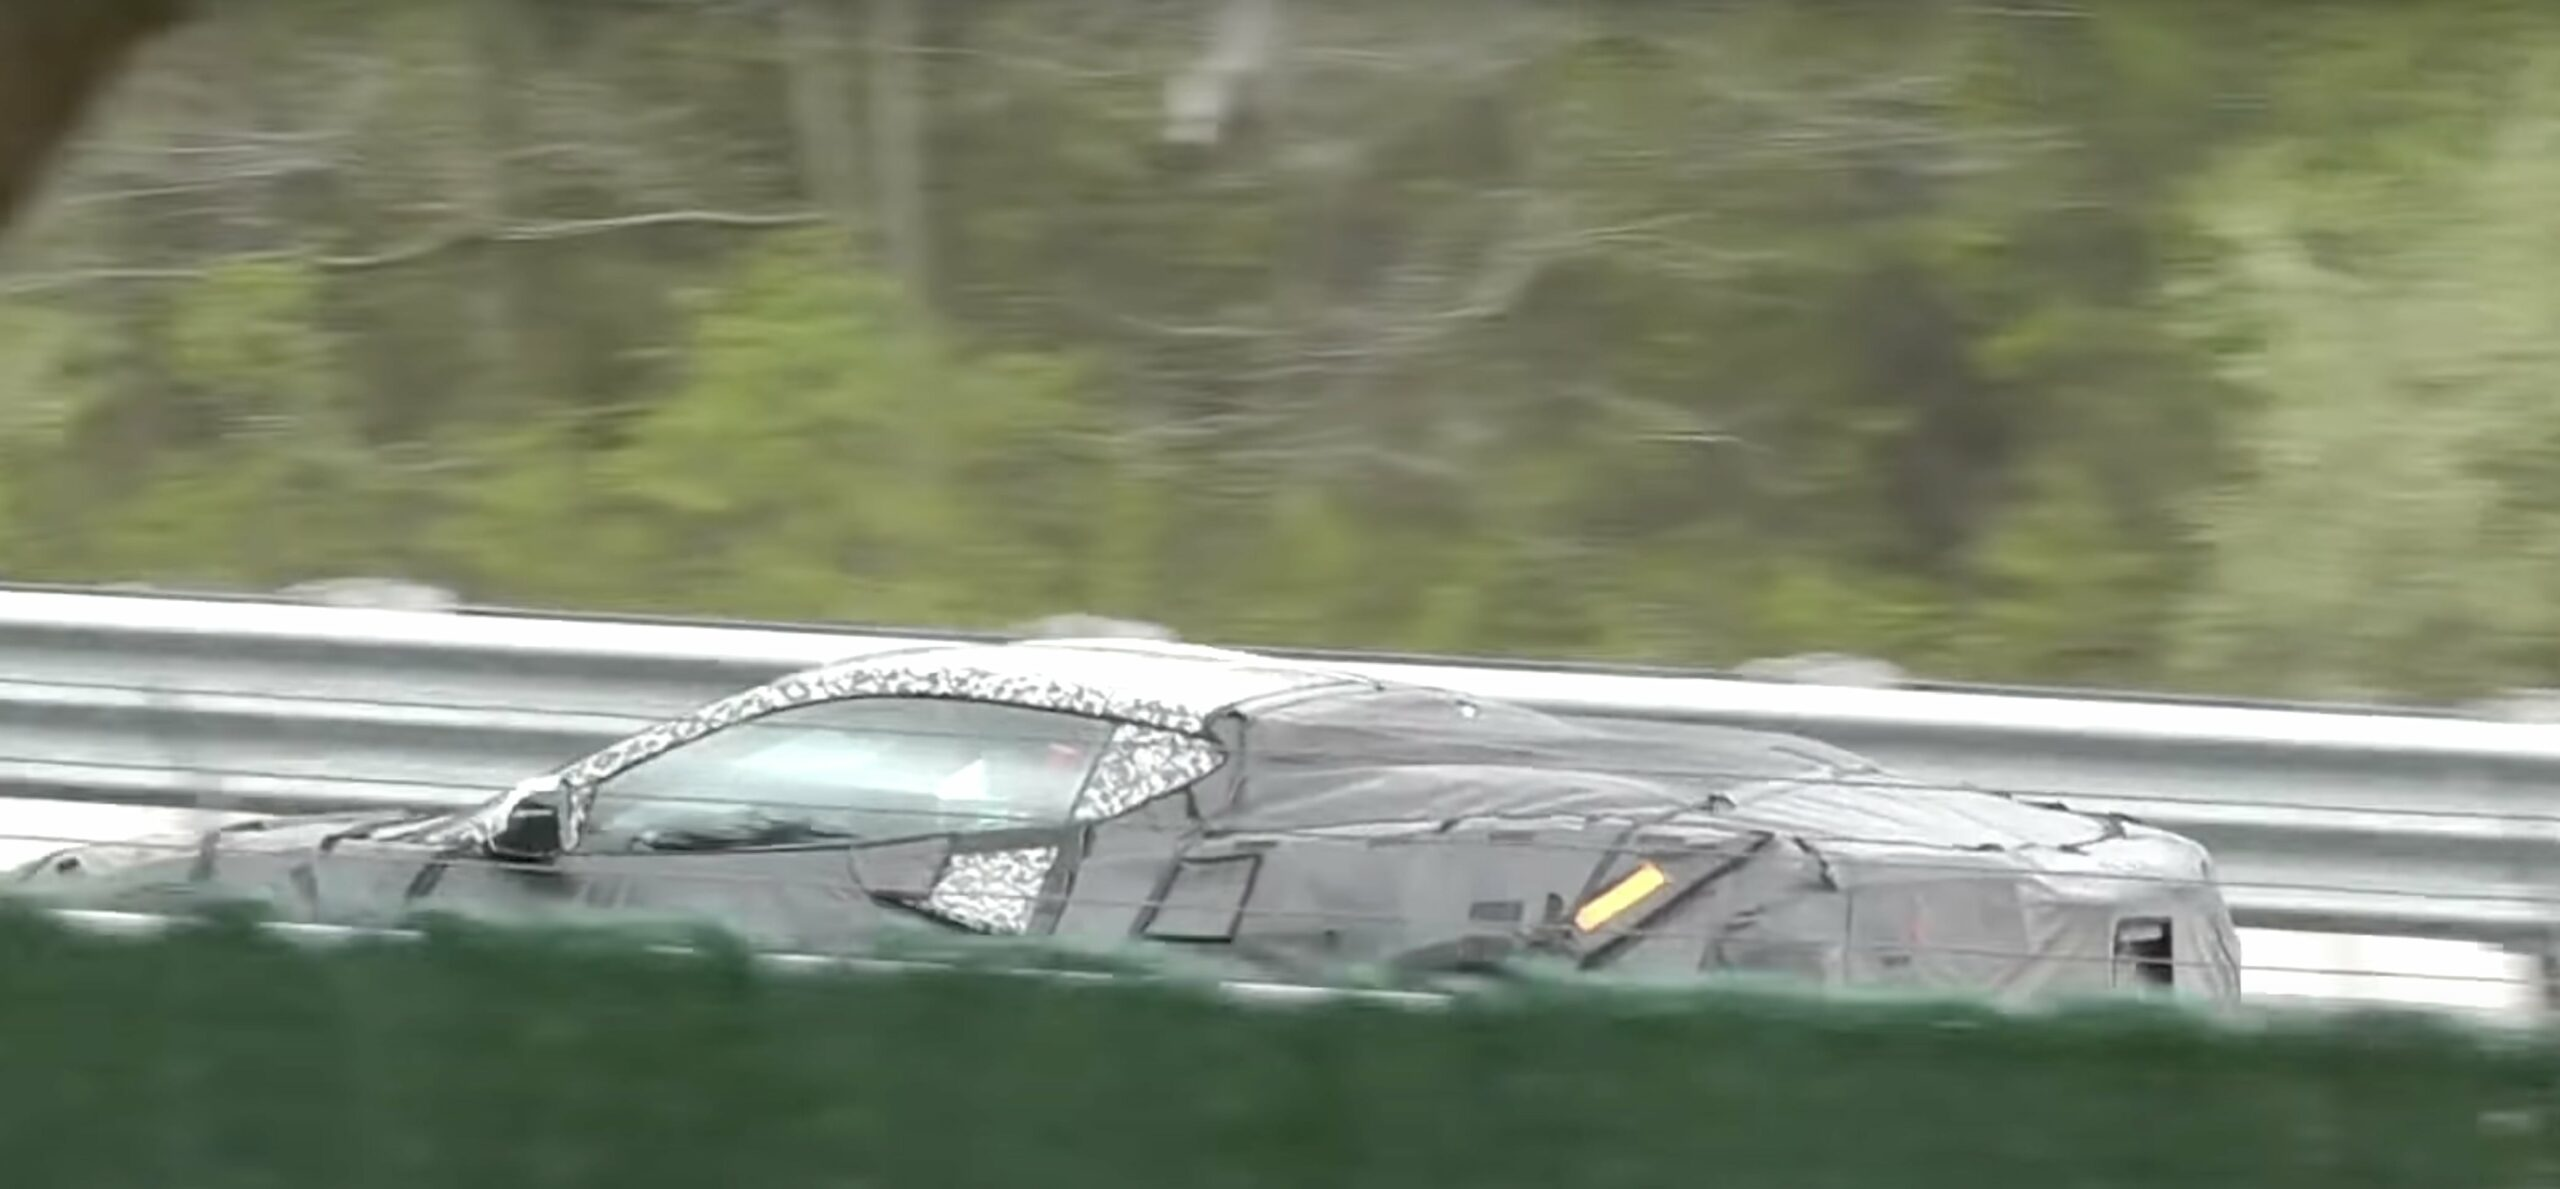 A side view of a new Corvette - possibly the 2023 C8 Z06